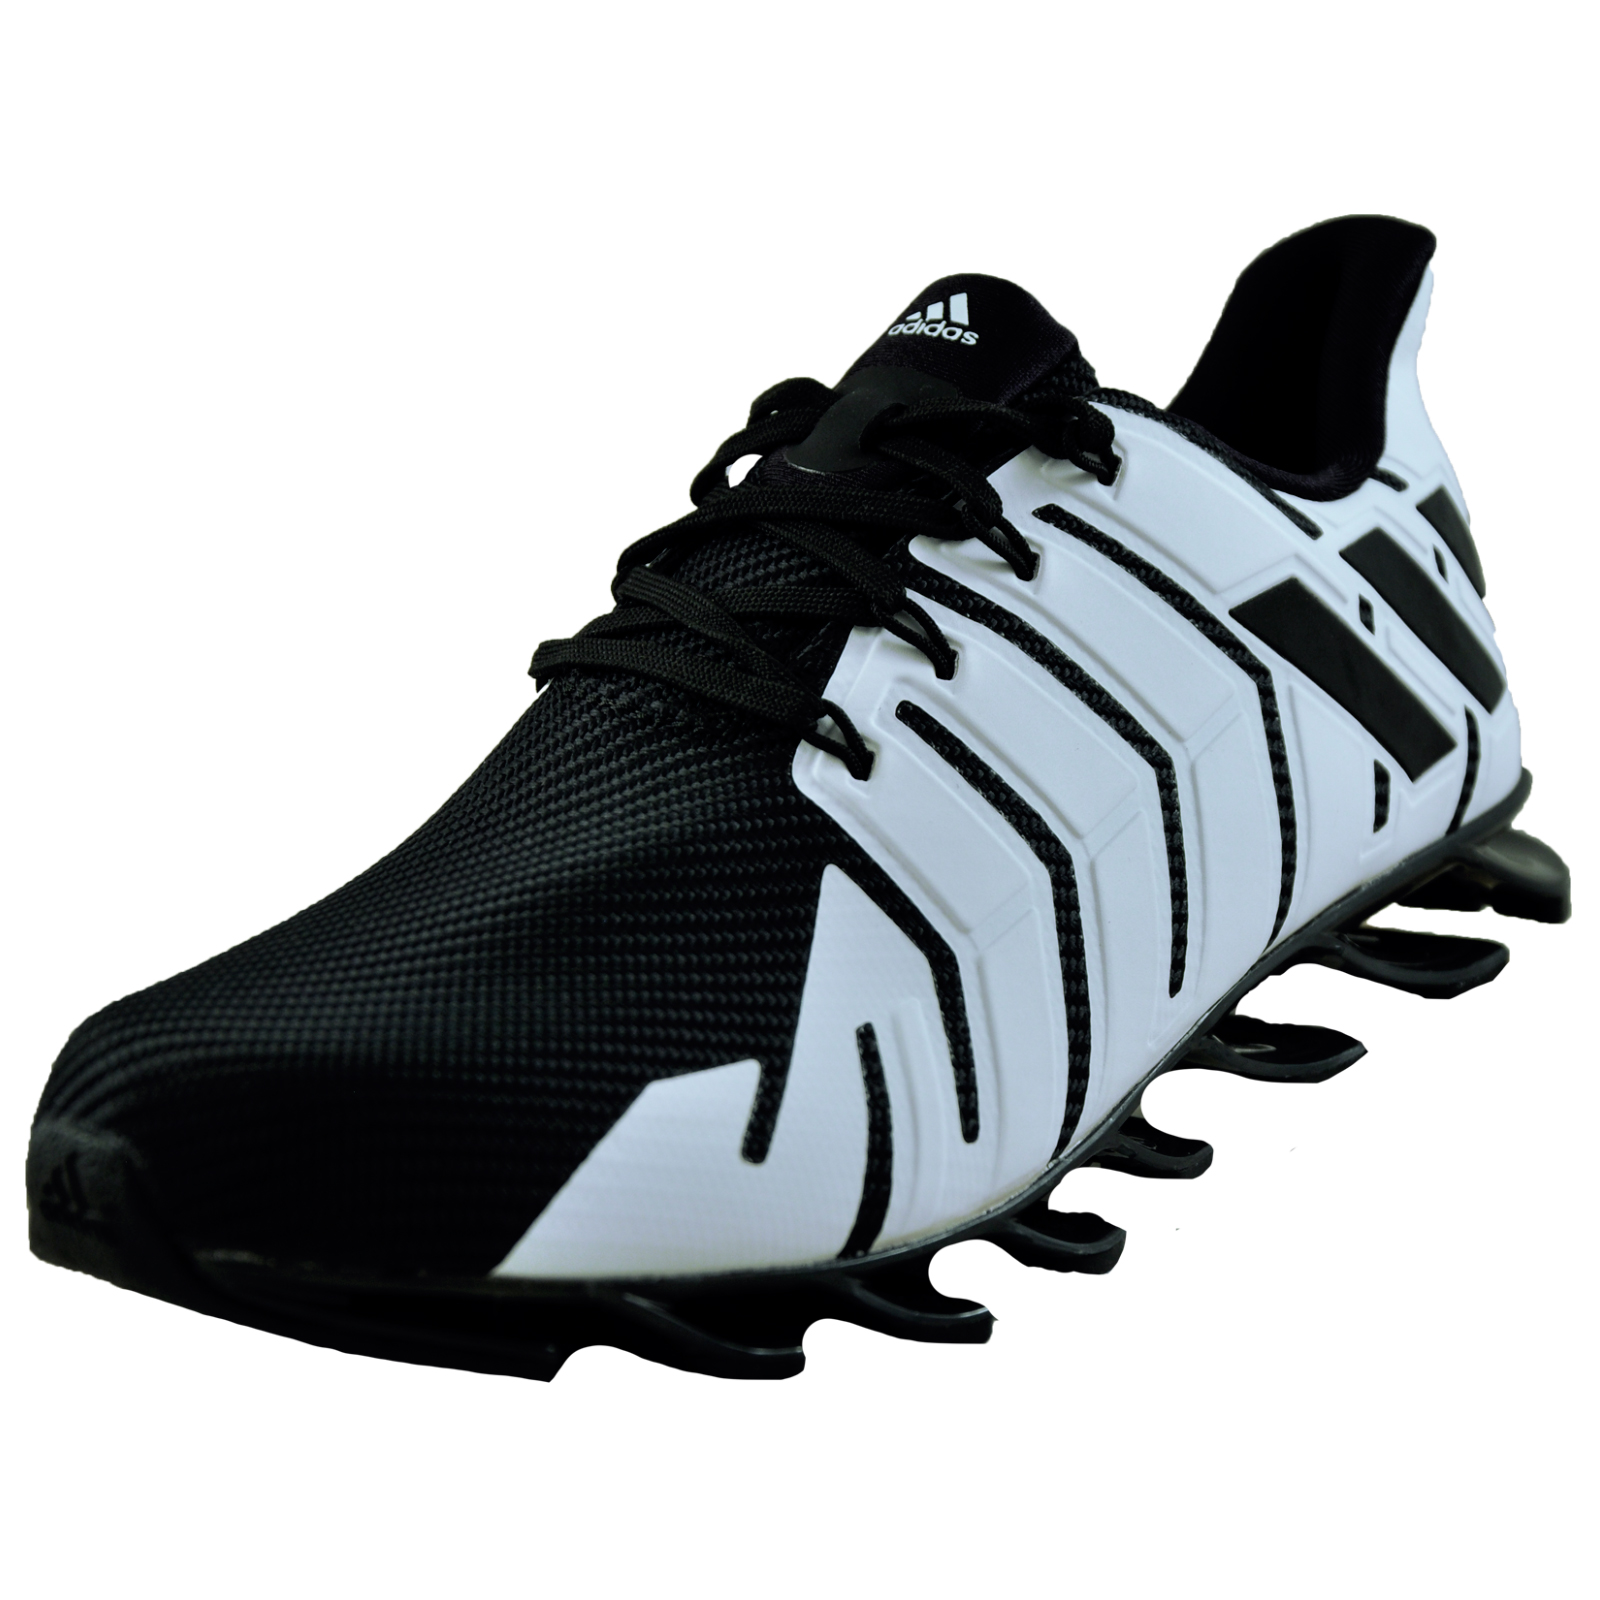 big sale 11fe5 9622e Adidas SpringBlade Pro Men s Premium Running Shoes Fitness Gym Trainers  Black